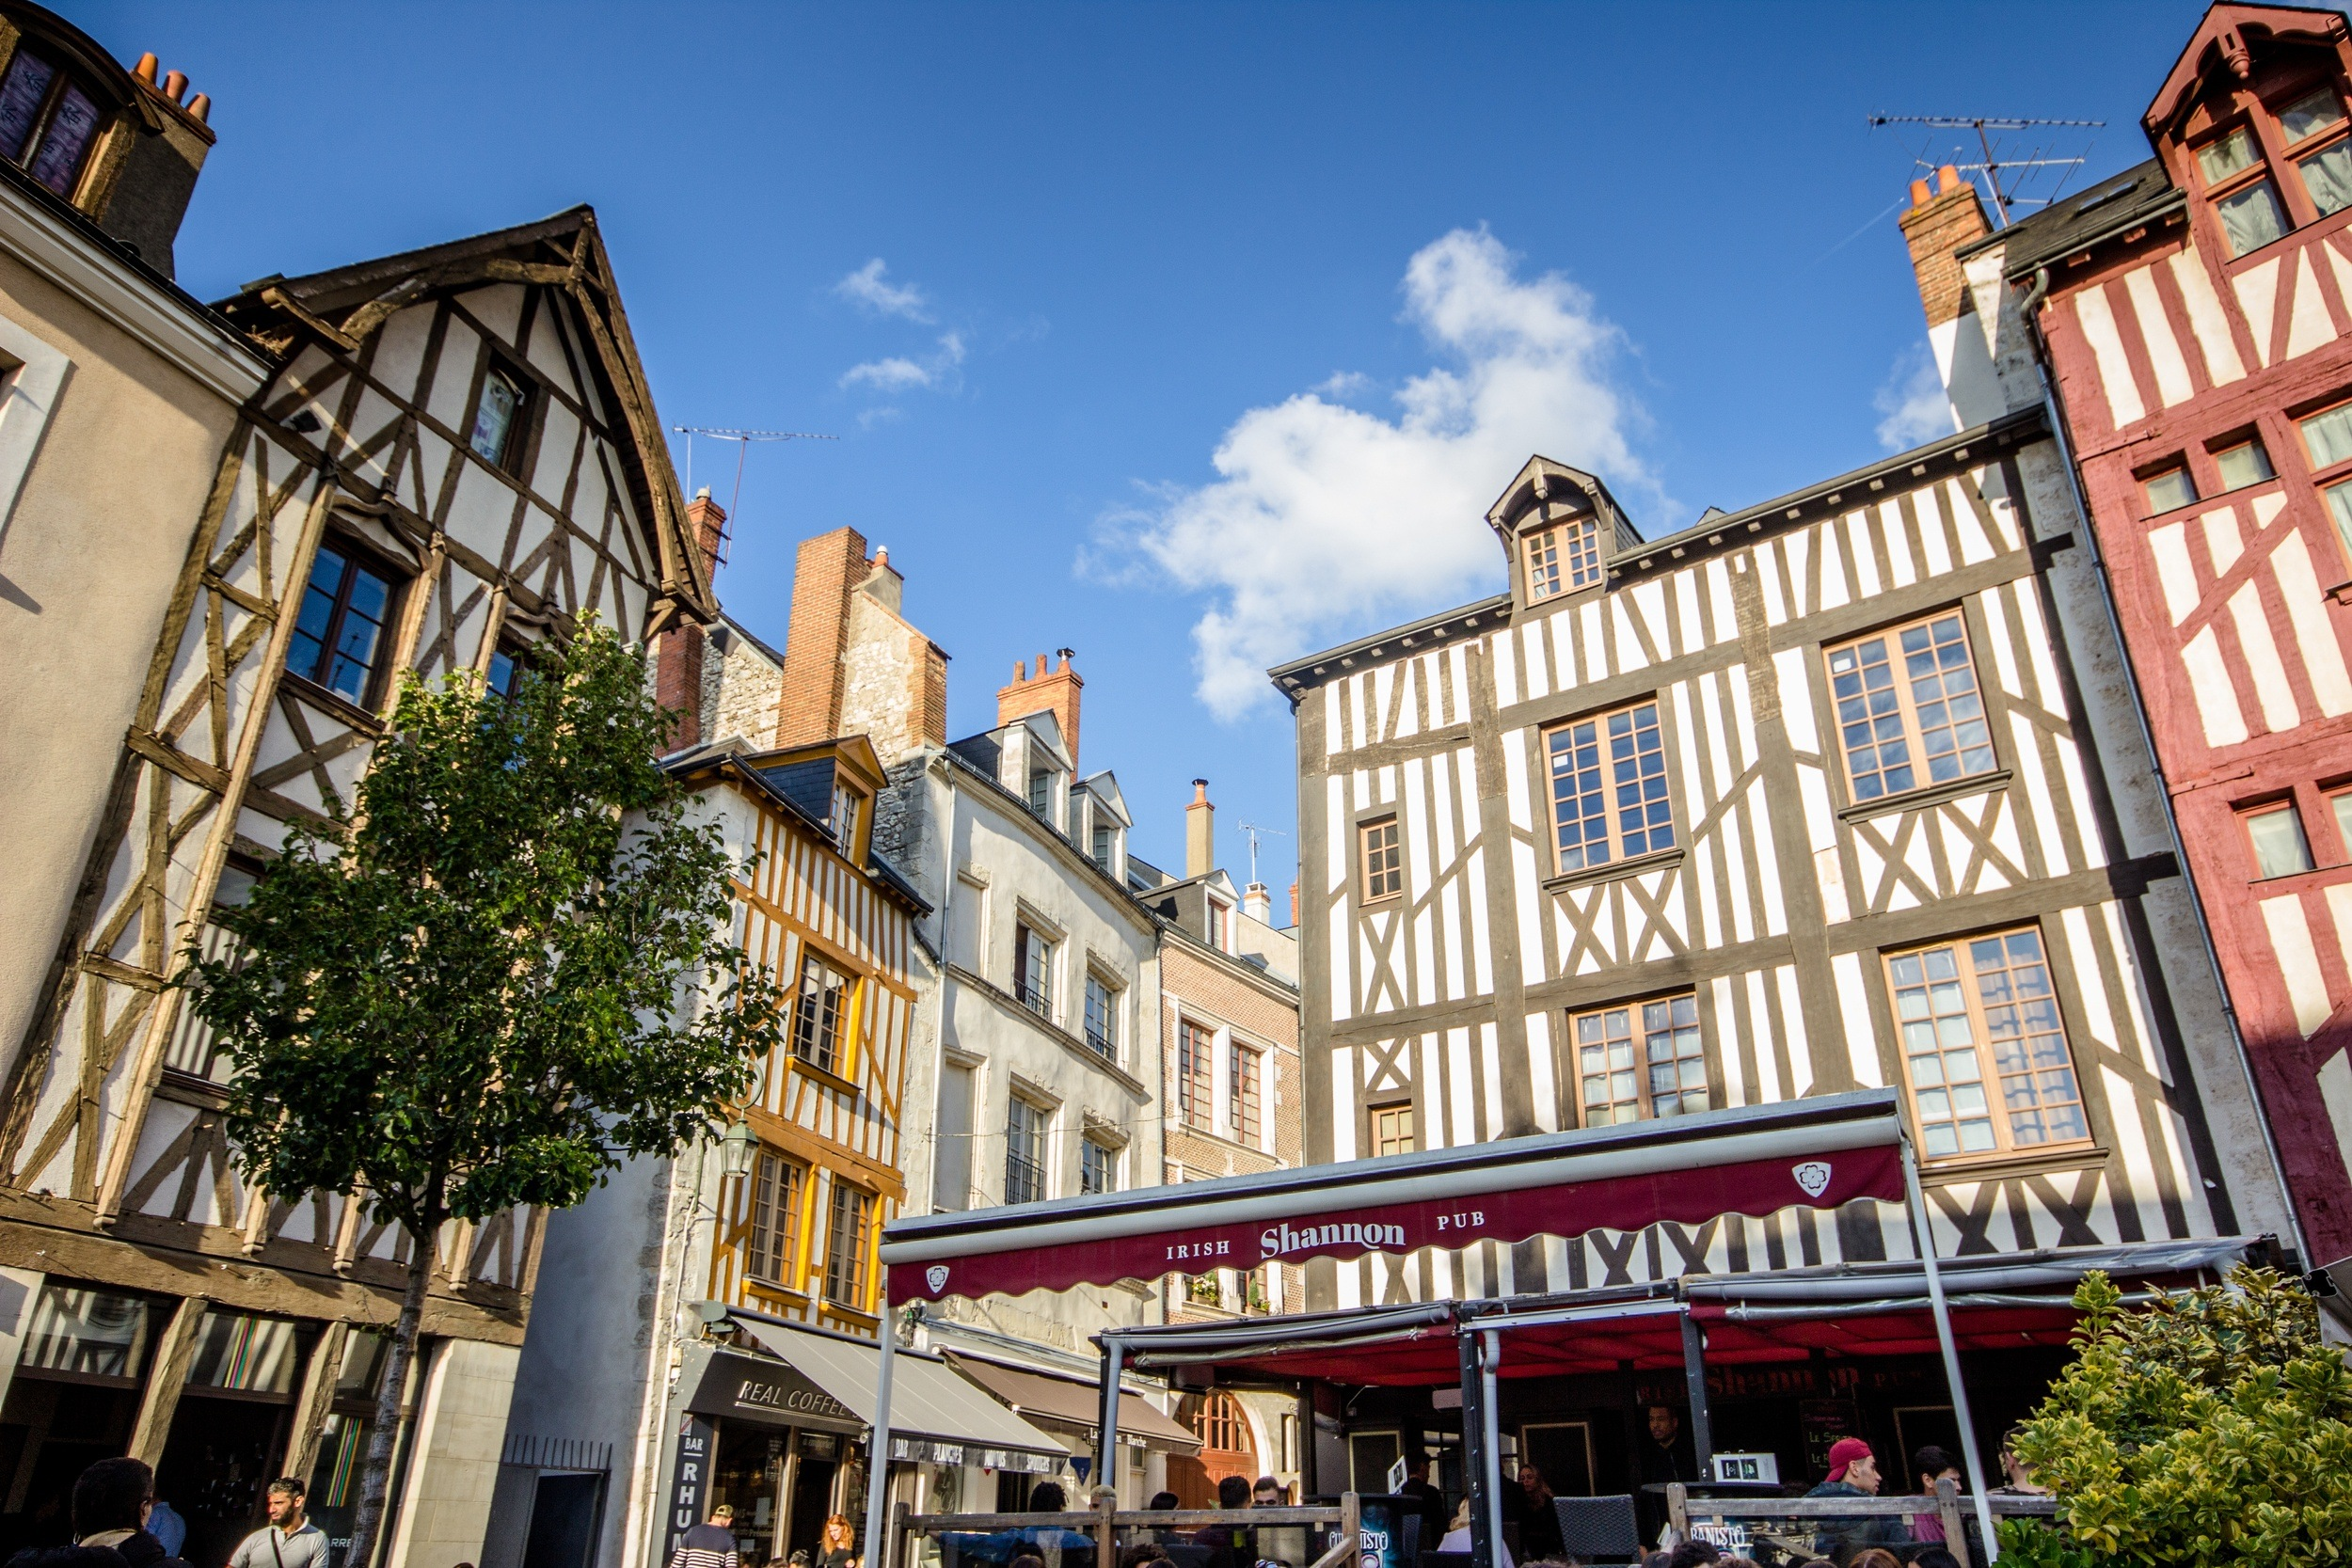 Timber homes in Orleans, France